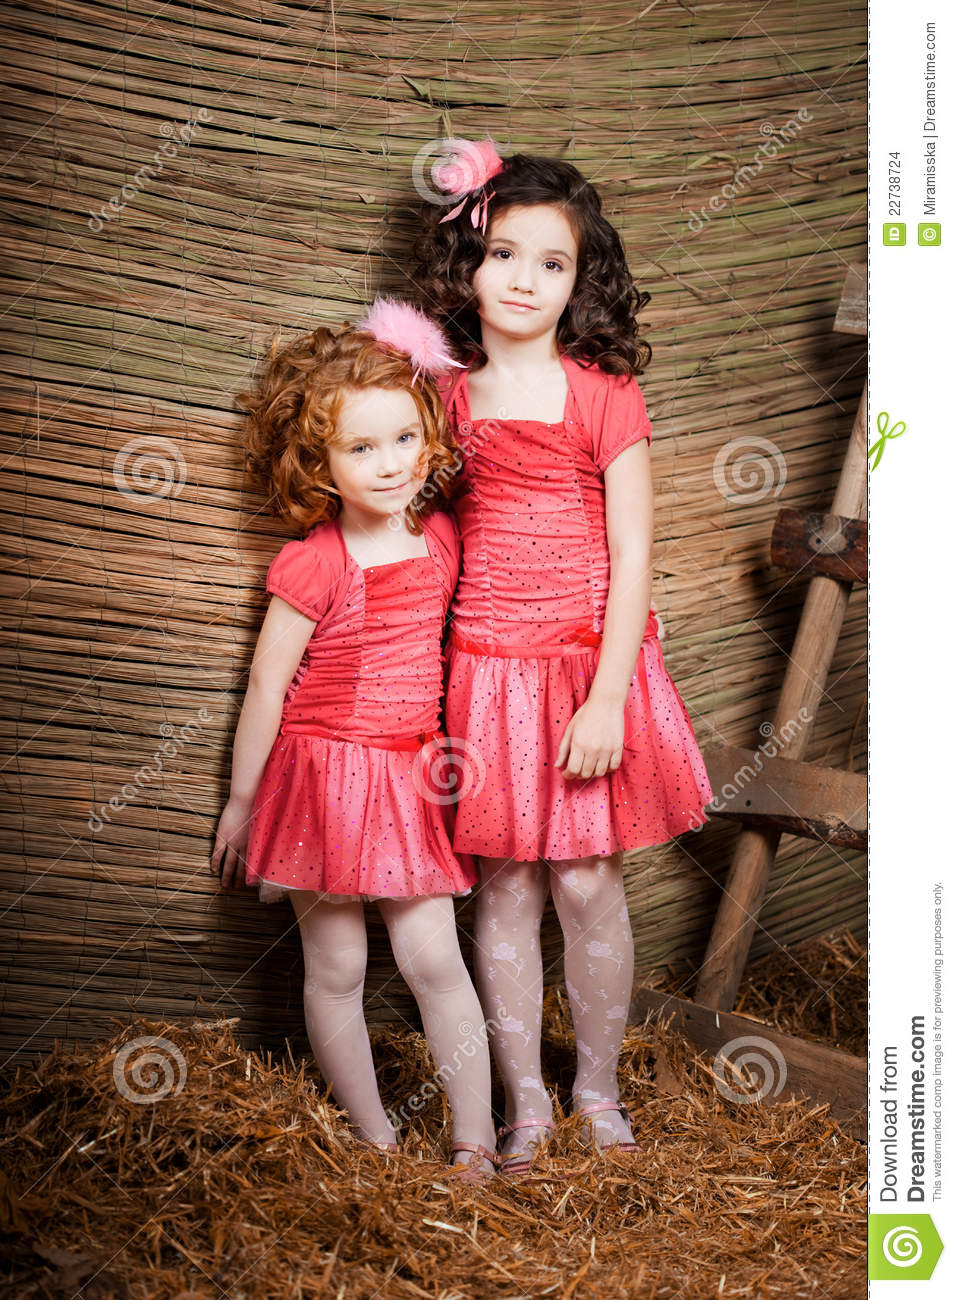 Two Little Girls Cute Kids Stock Photo Image 22738724